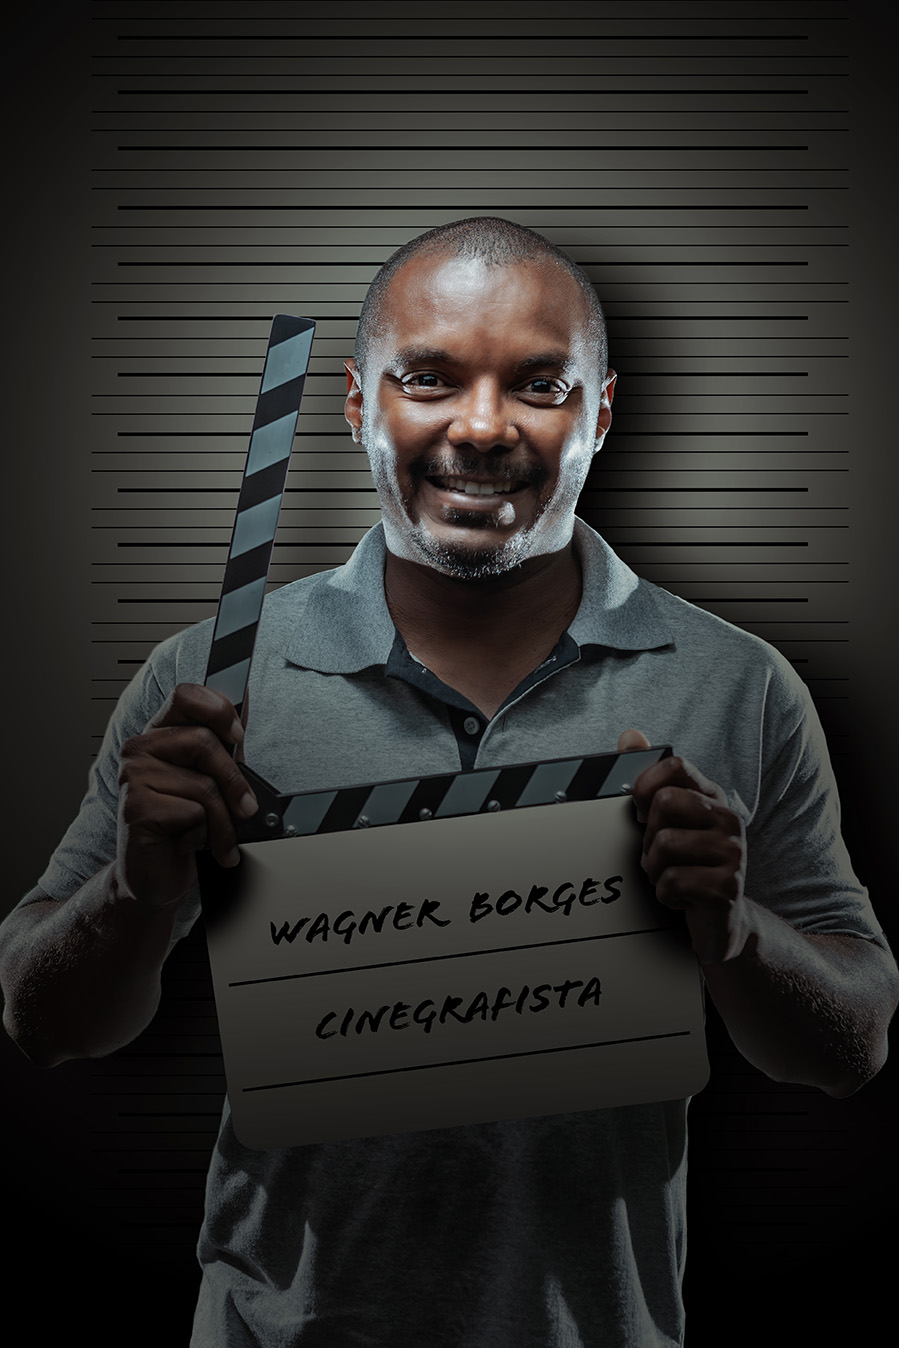 Wagner Borges - Cinegrafista